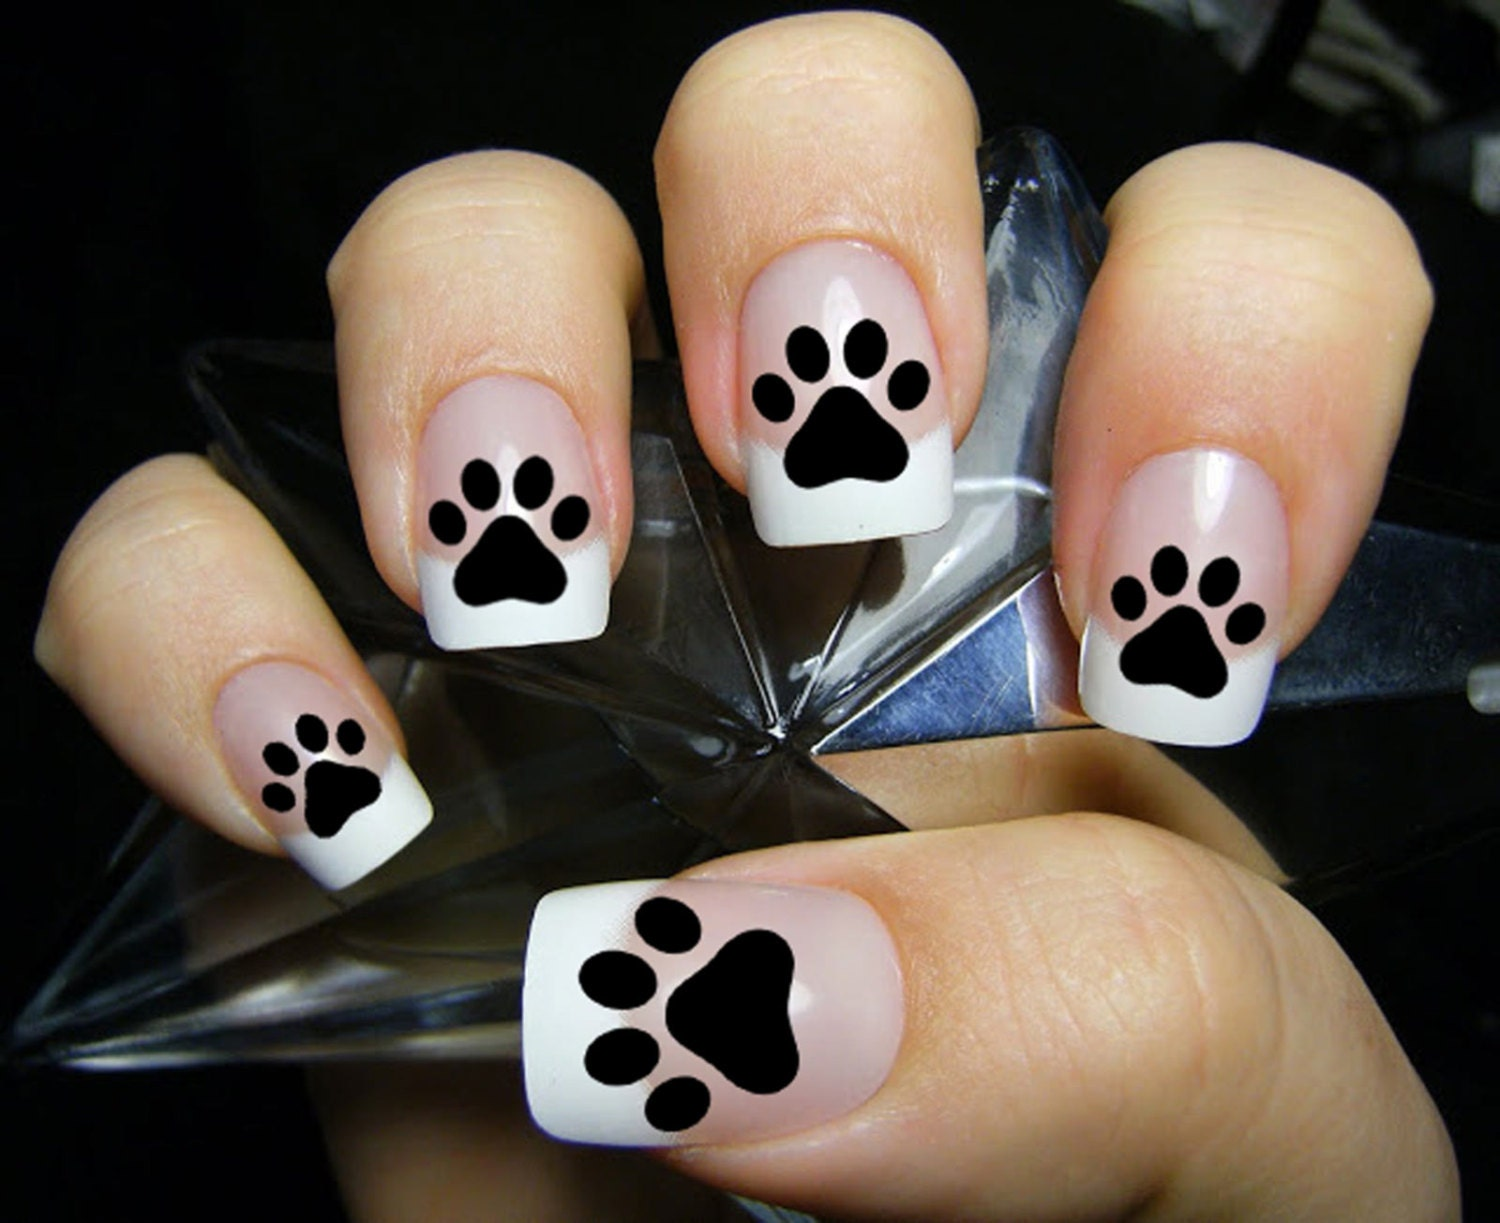 Description. 48 PAWS PRINTS Nail Art ... - 48 PAW PRINTS Nail Decals PAW Kitten Puppy Dog Paws Black